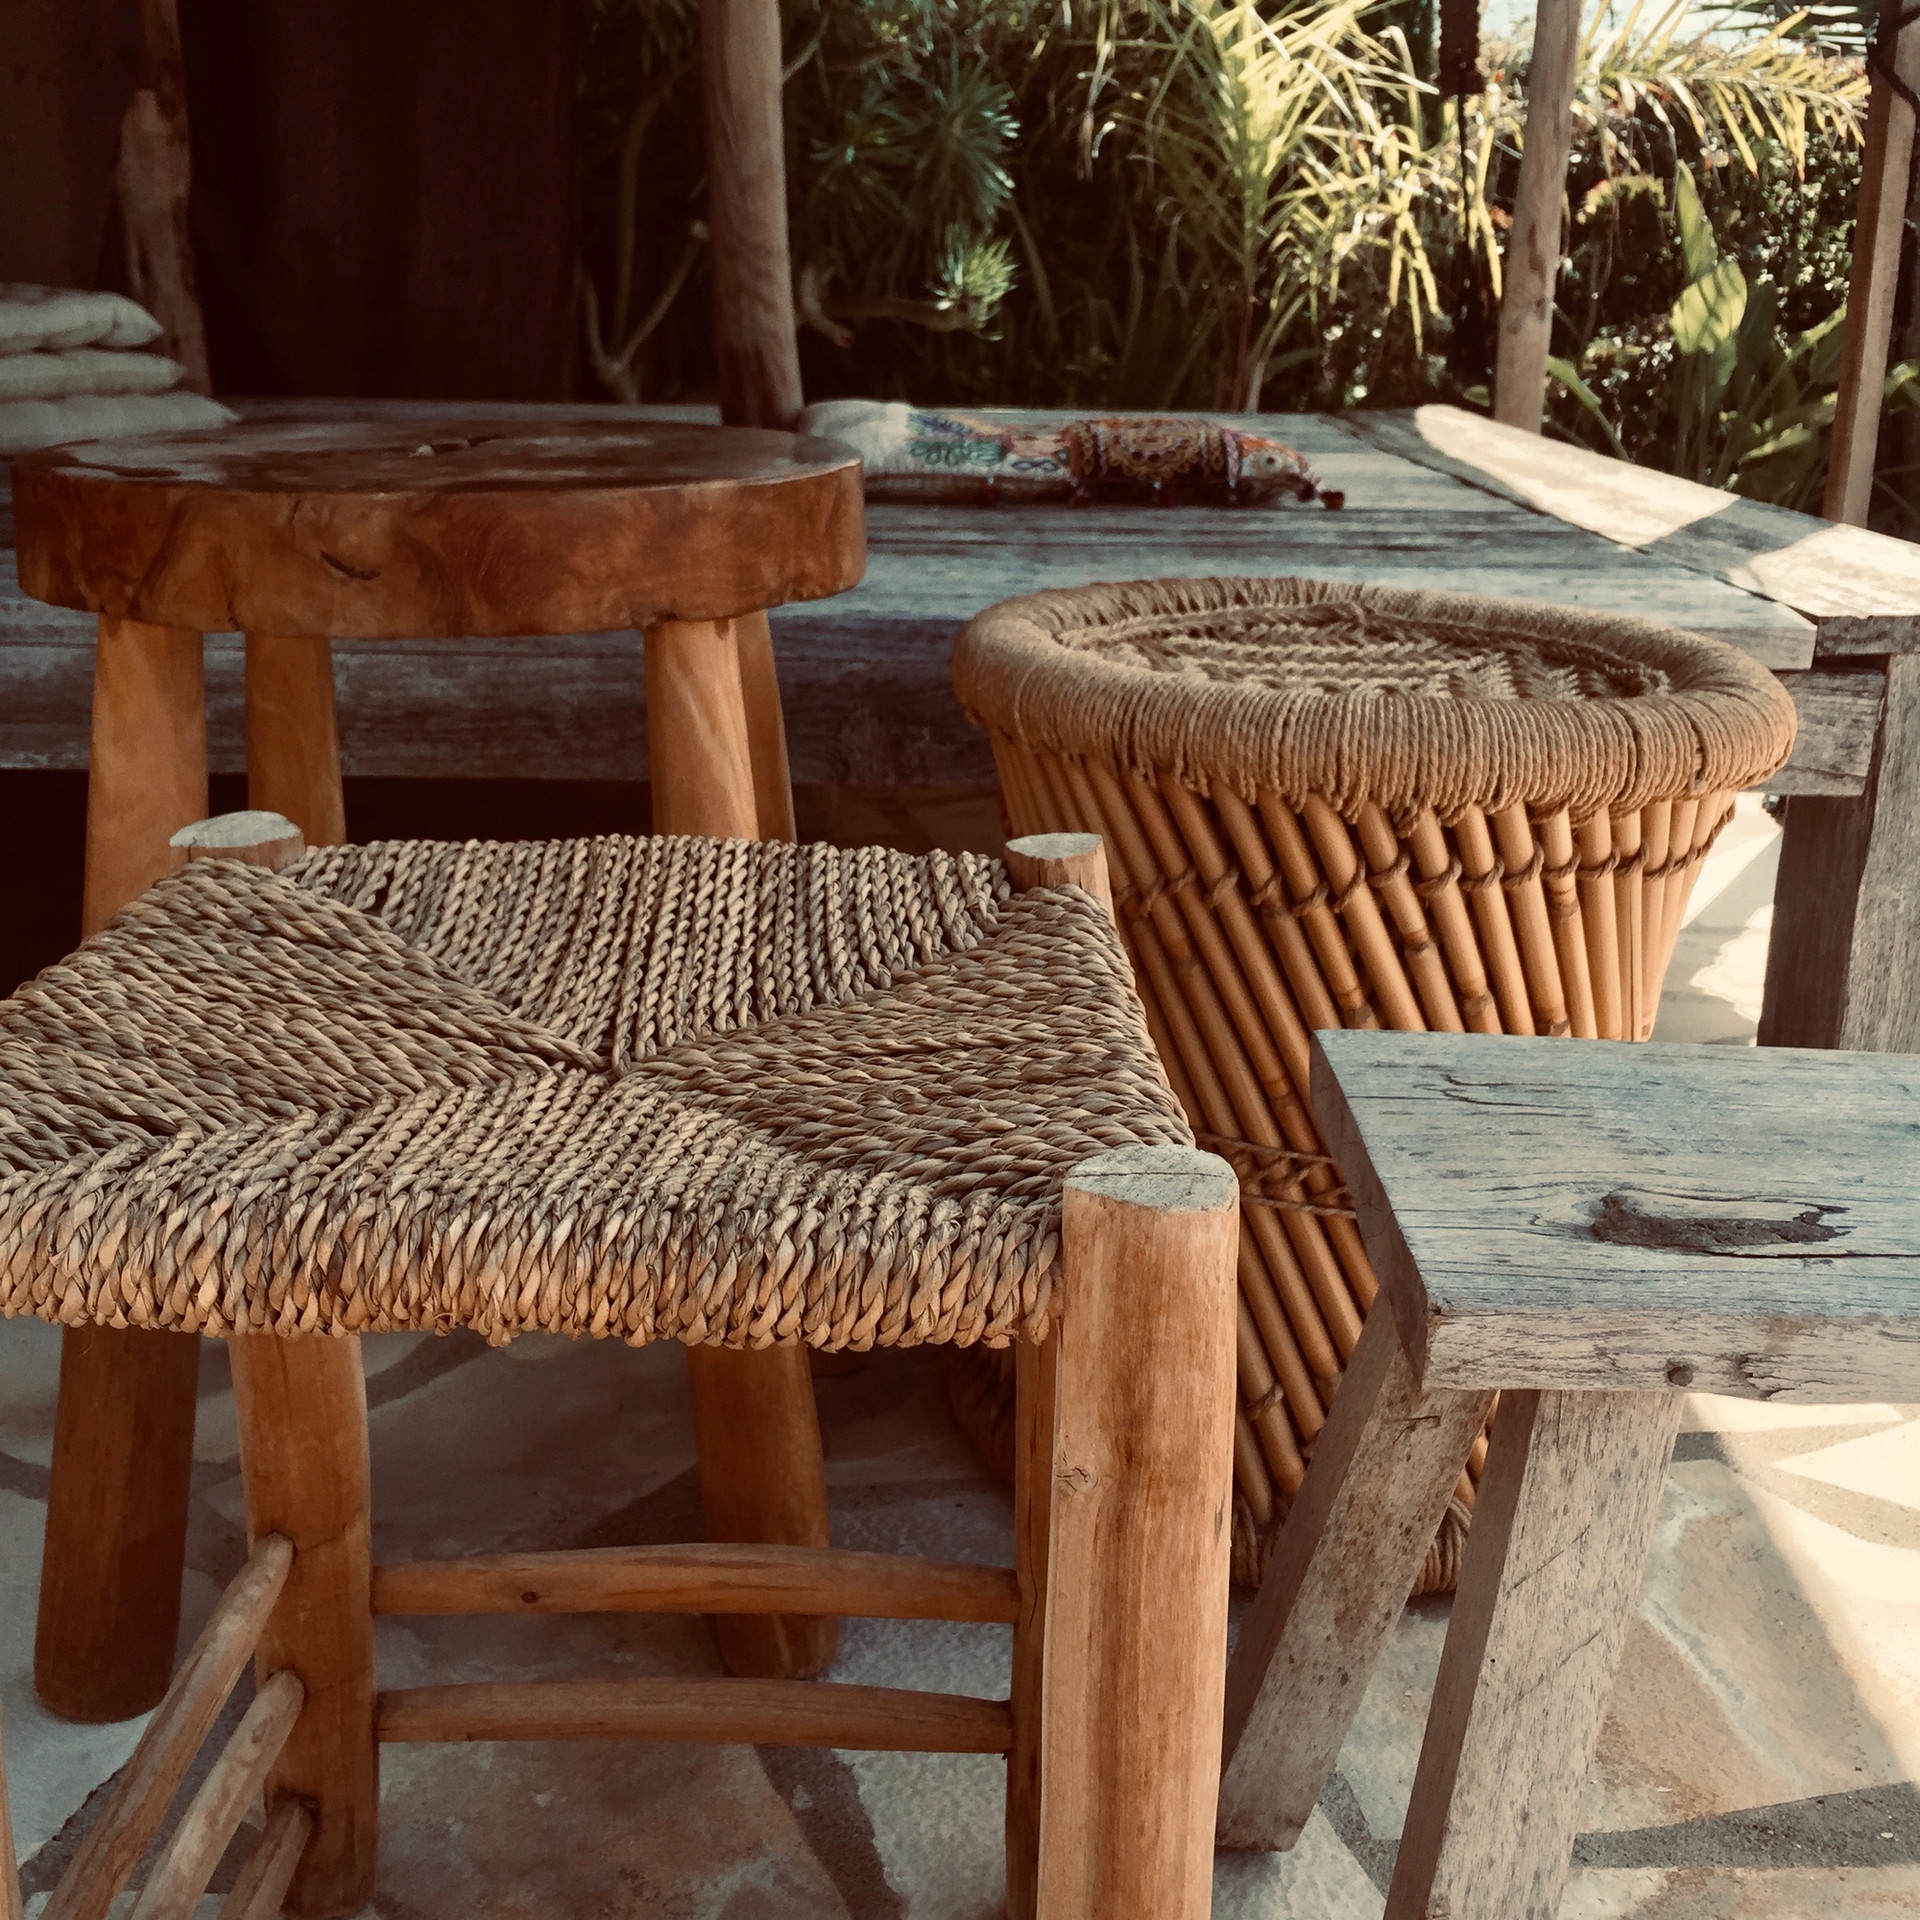 wooden stools/tables